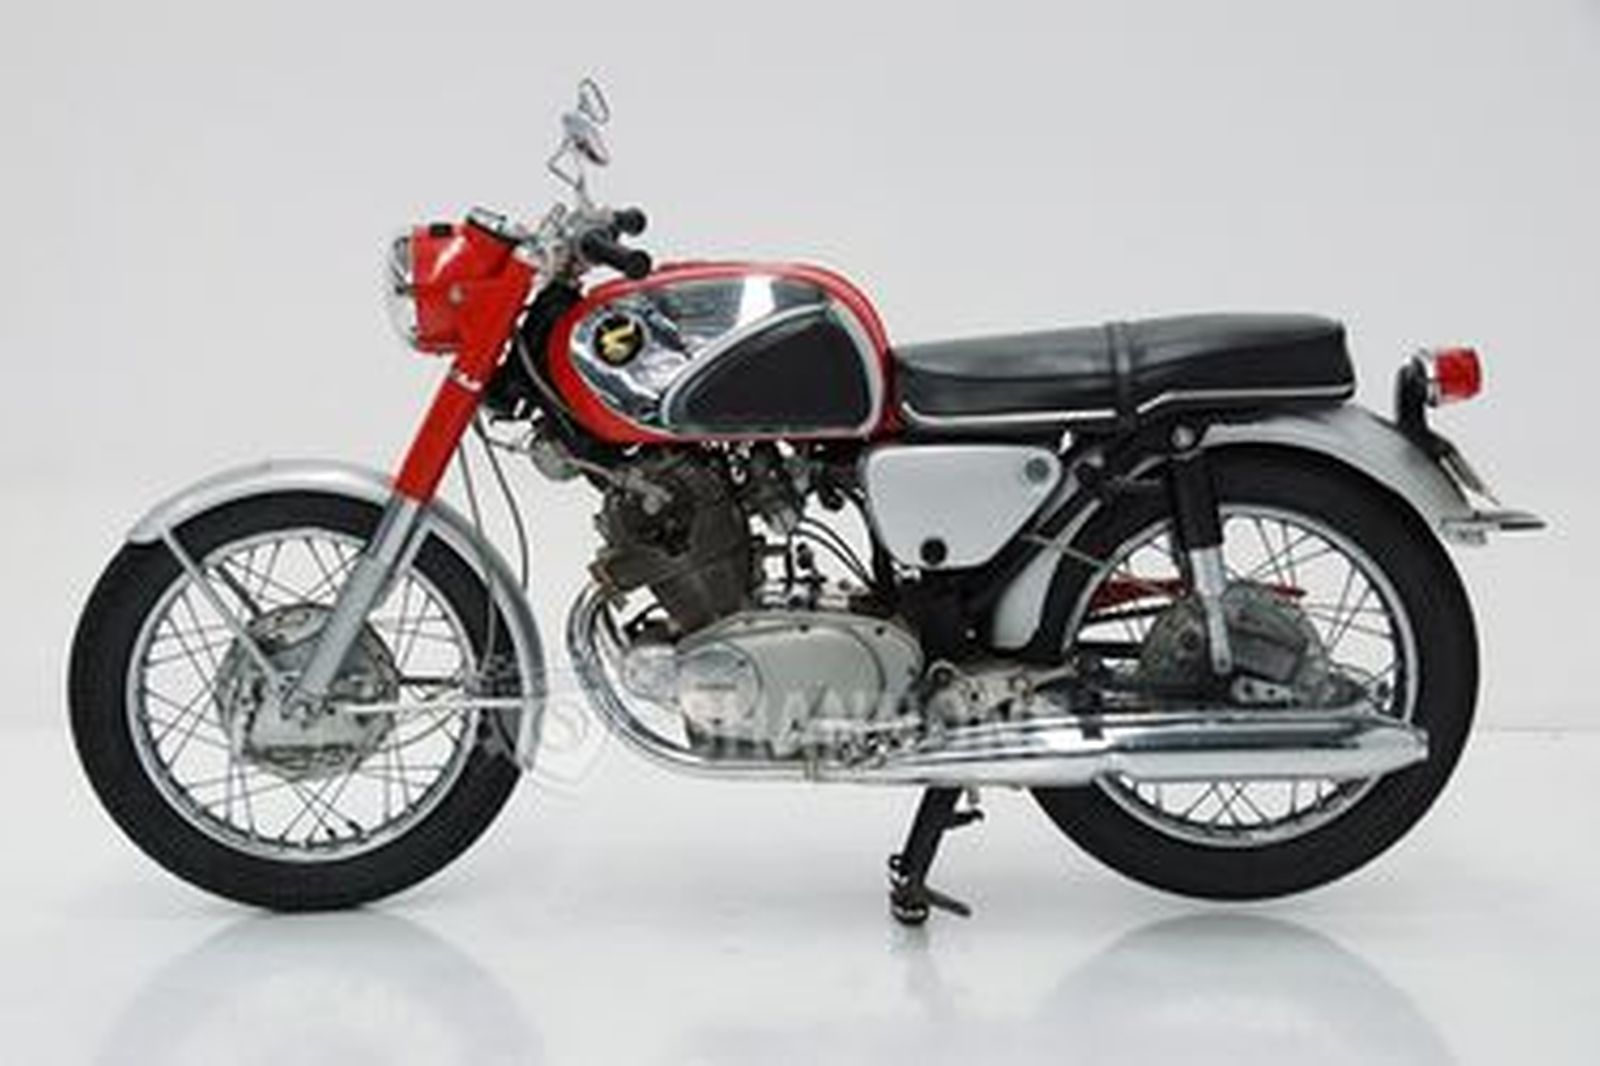 Honda Super Hawk 305 Motorcycle